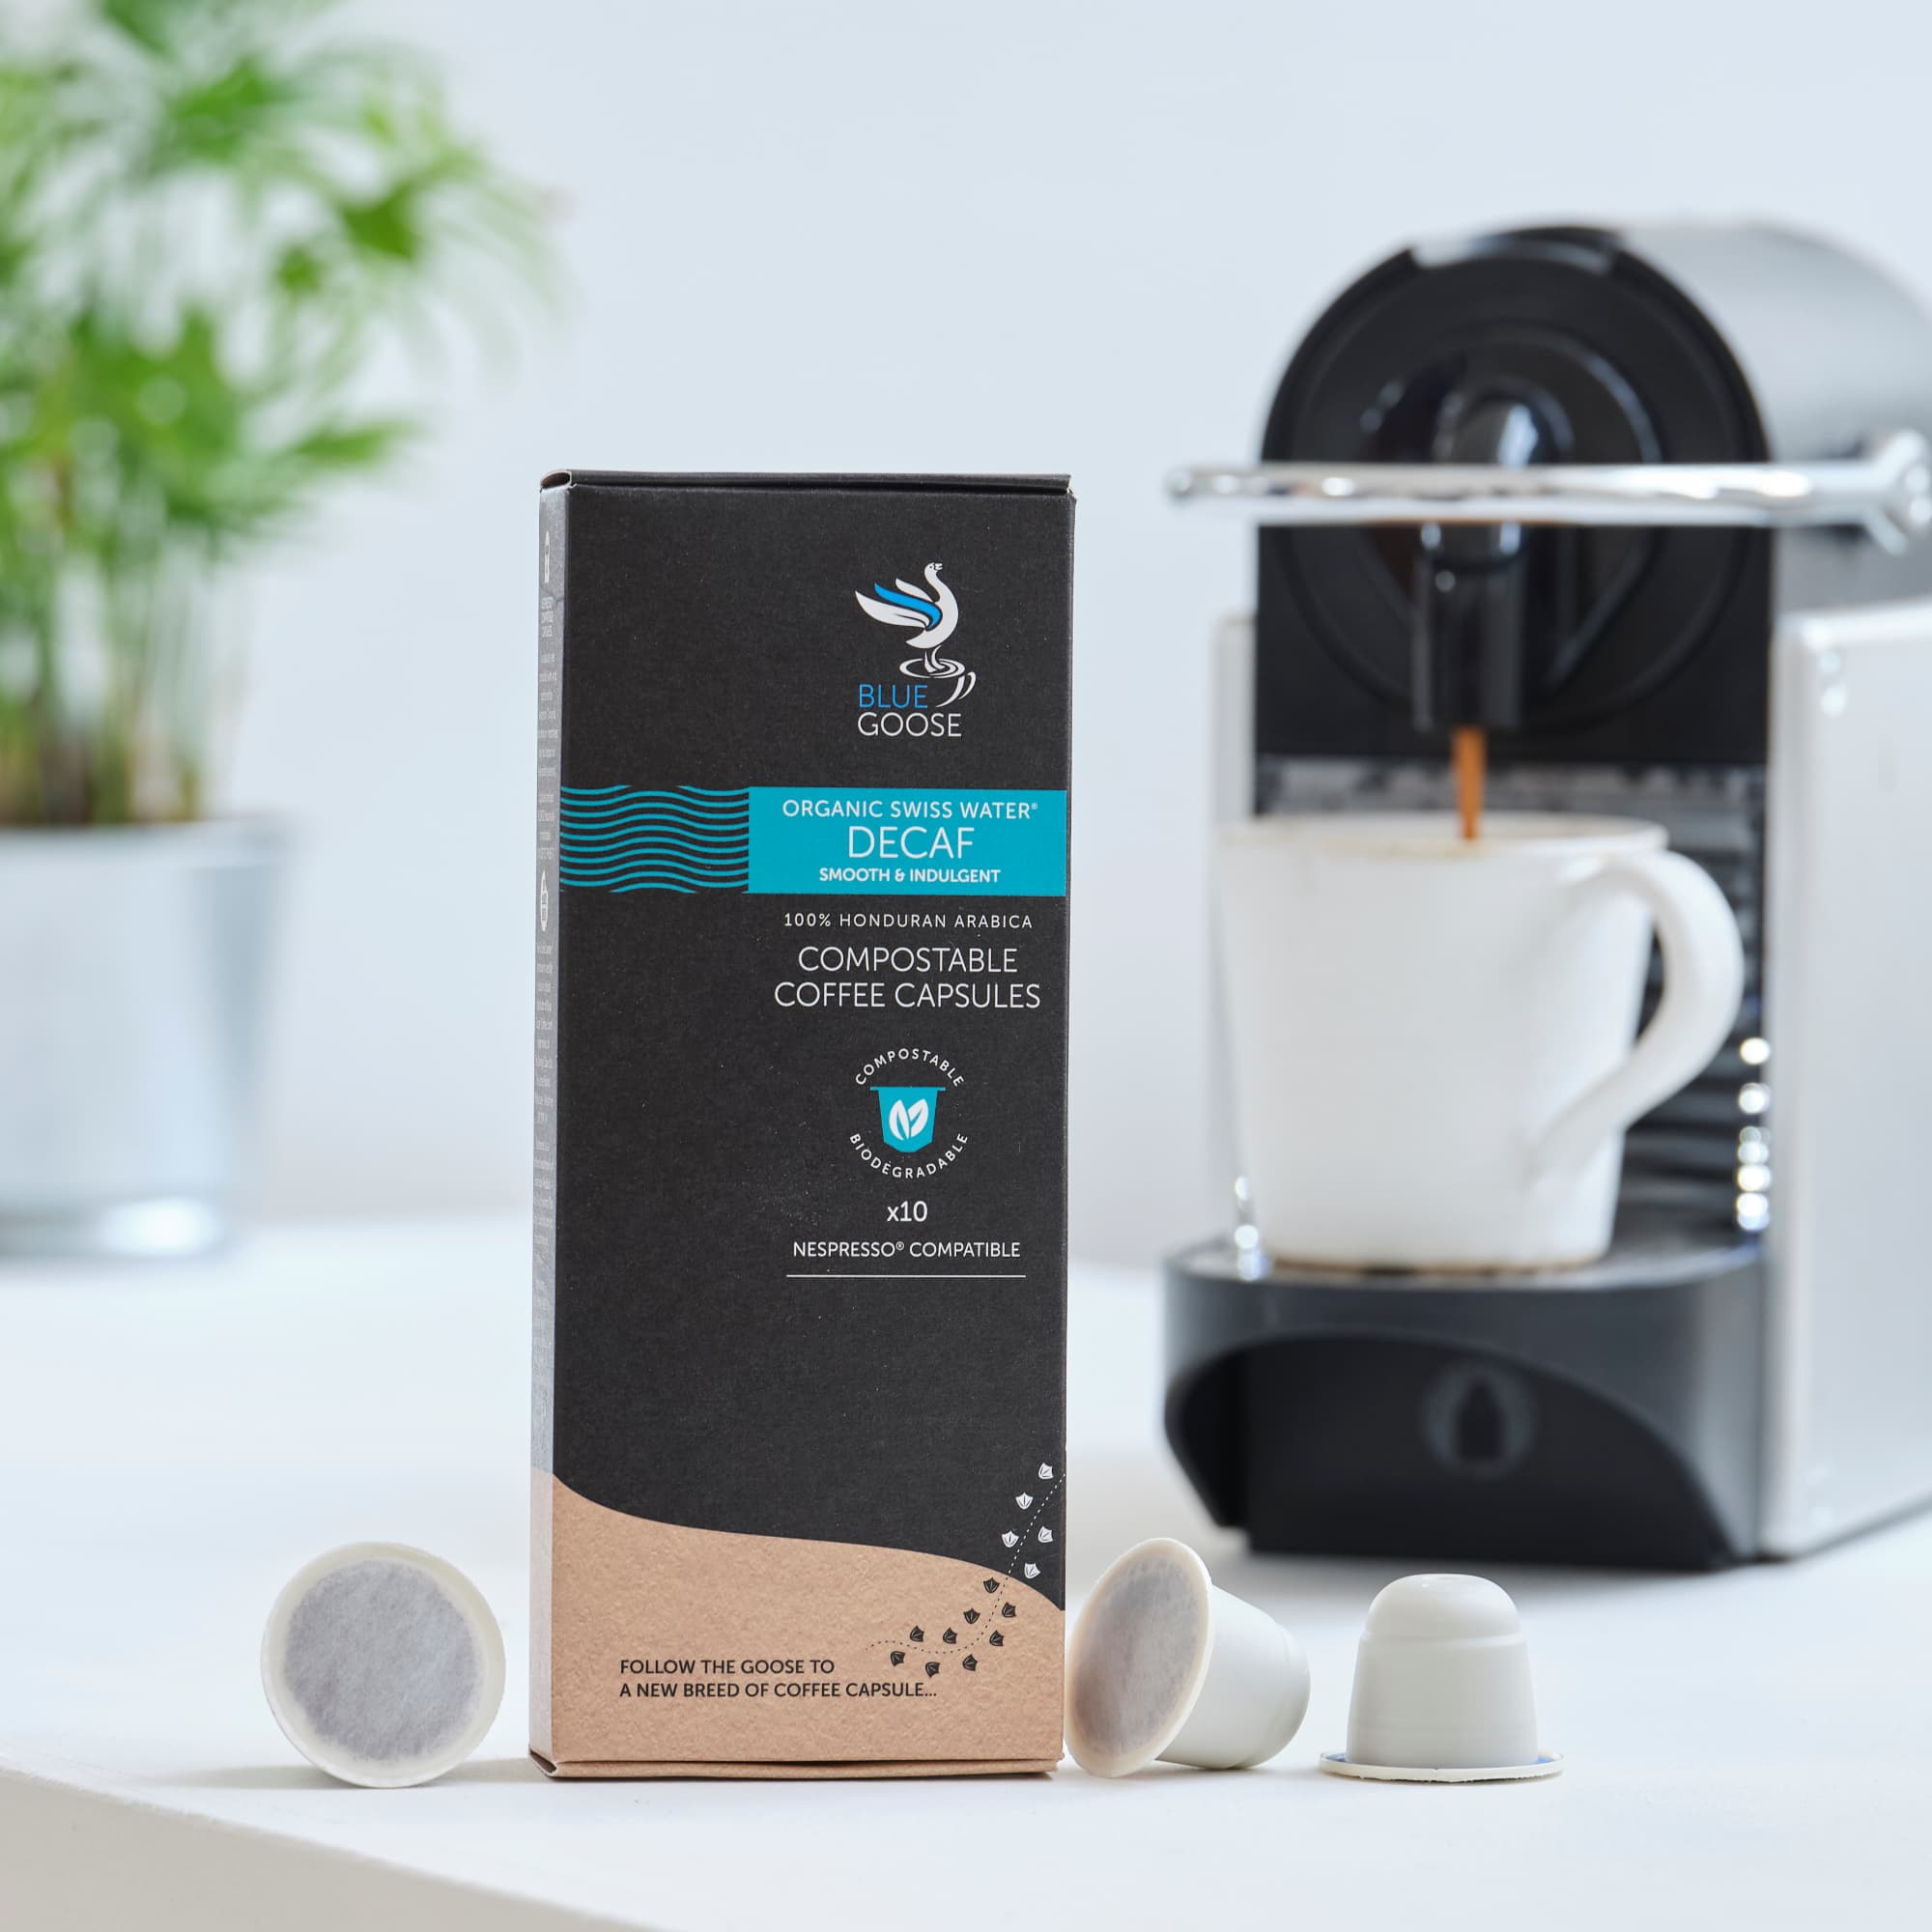 Organic Swiss Water Decaf Coffee Pods